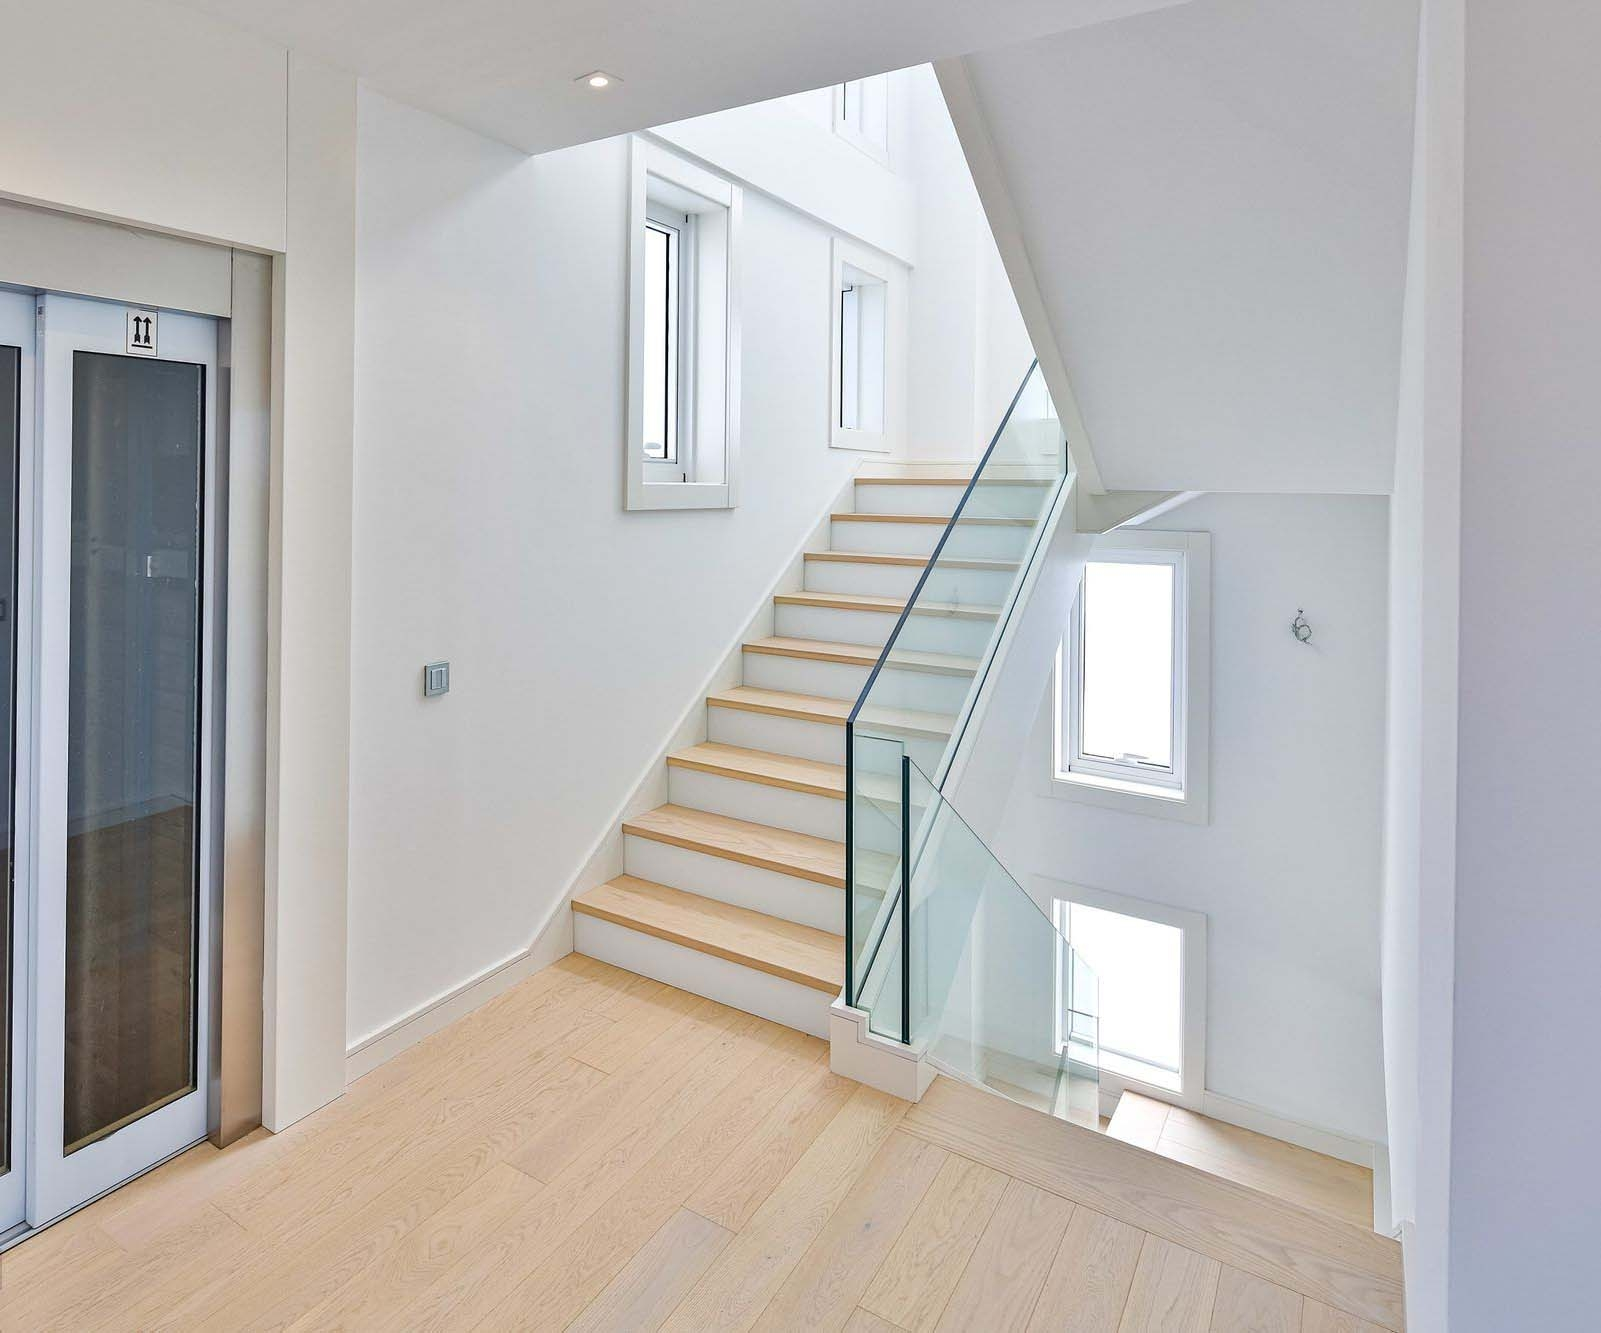 Modern Staircase Design Contemporary Stair Design Ideas   Wooden Stairs With Lights   Light Gray   Motion Sensor   Side   Glass   Backyard Wood